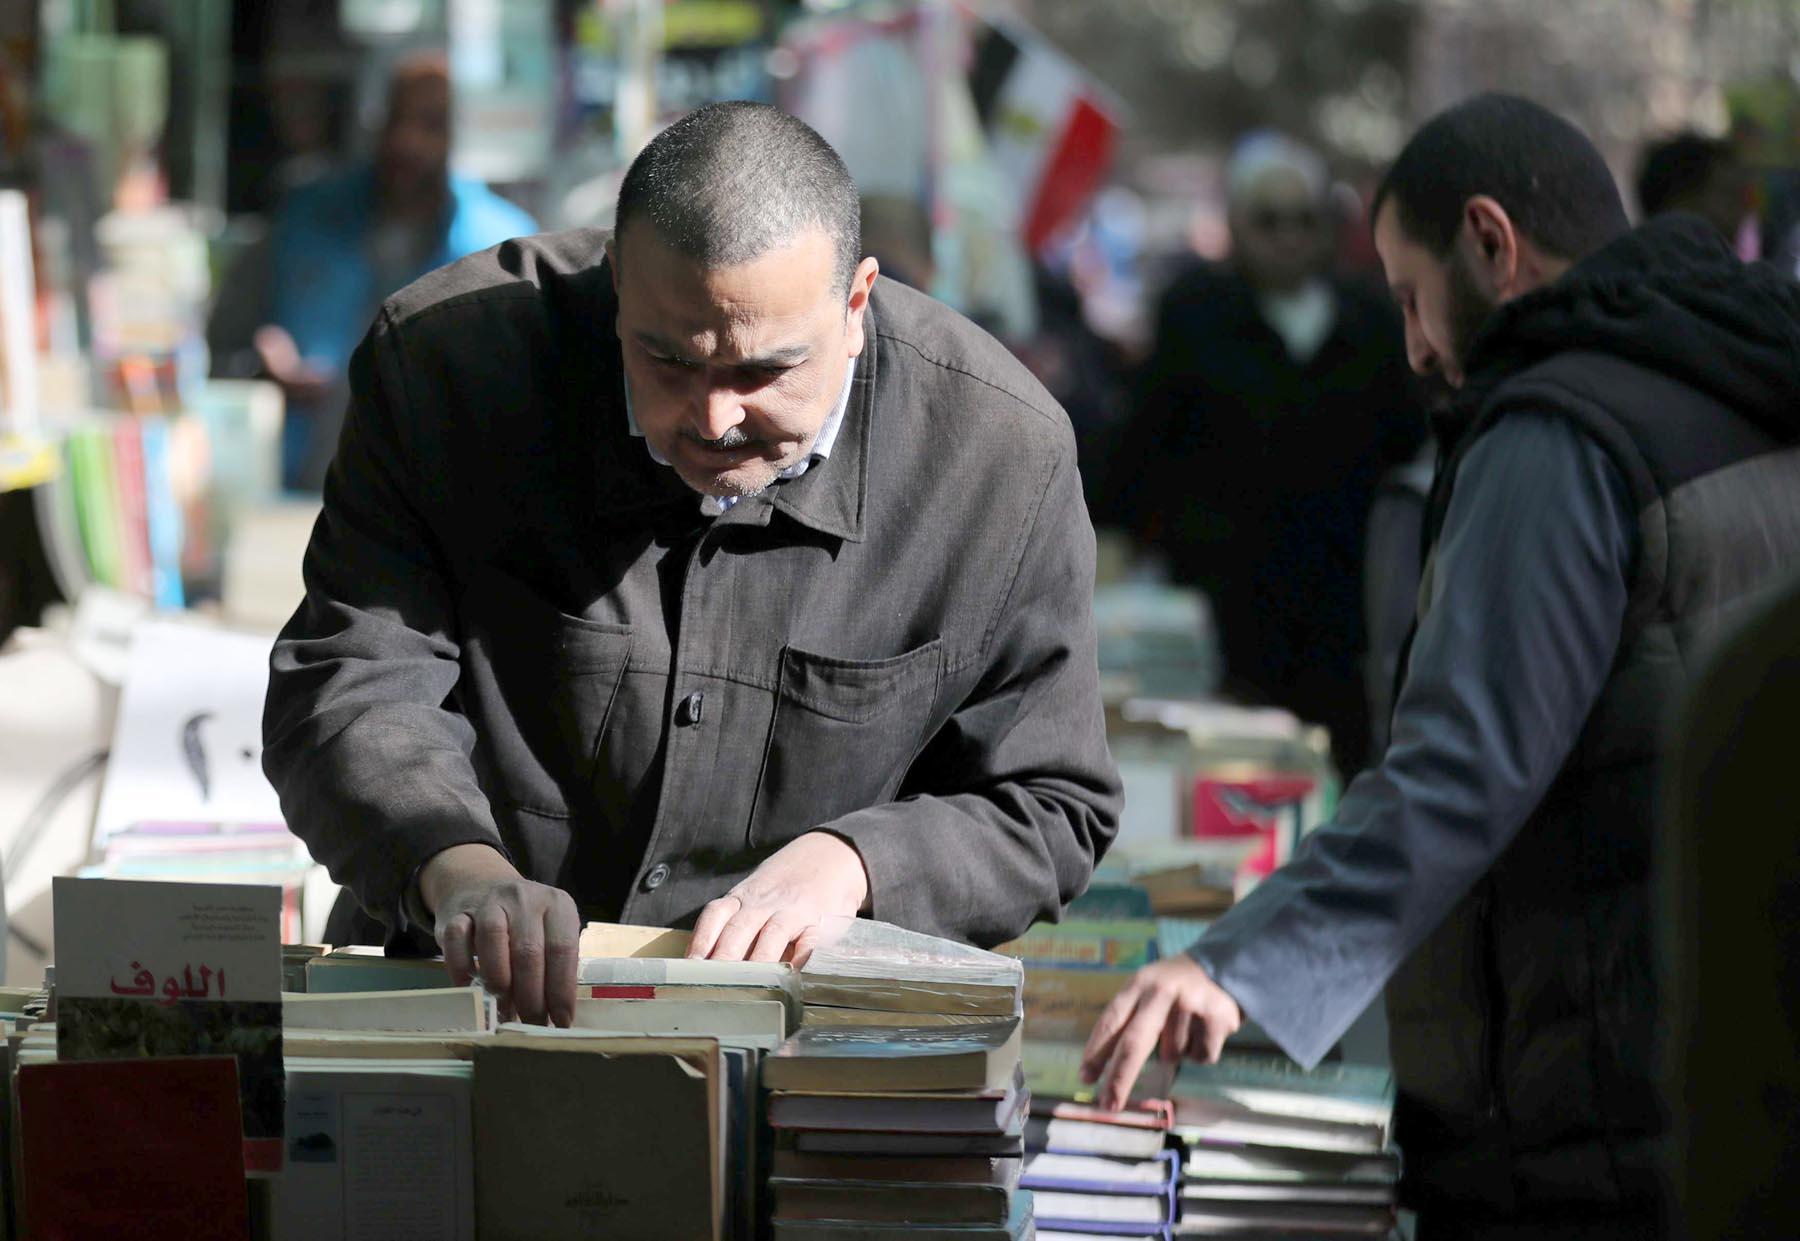 A man chooses a book at Al-Azbakeya market in Cairo.        (Reuters)